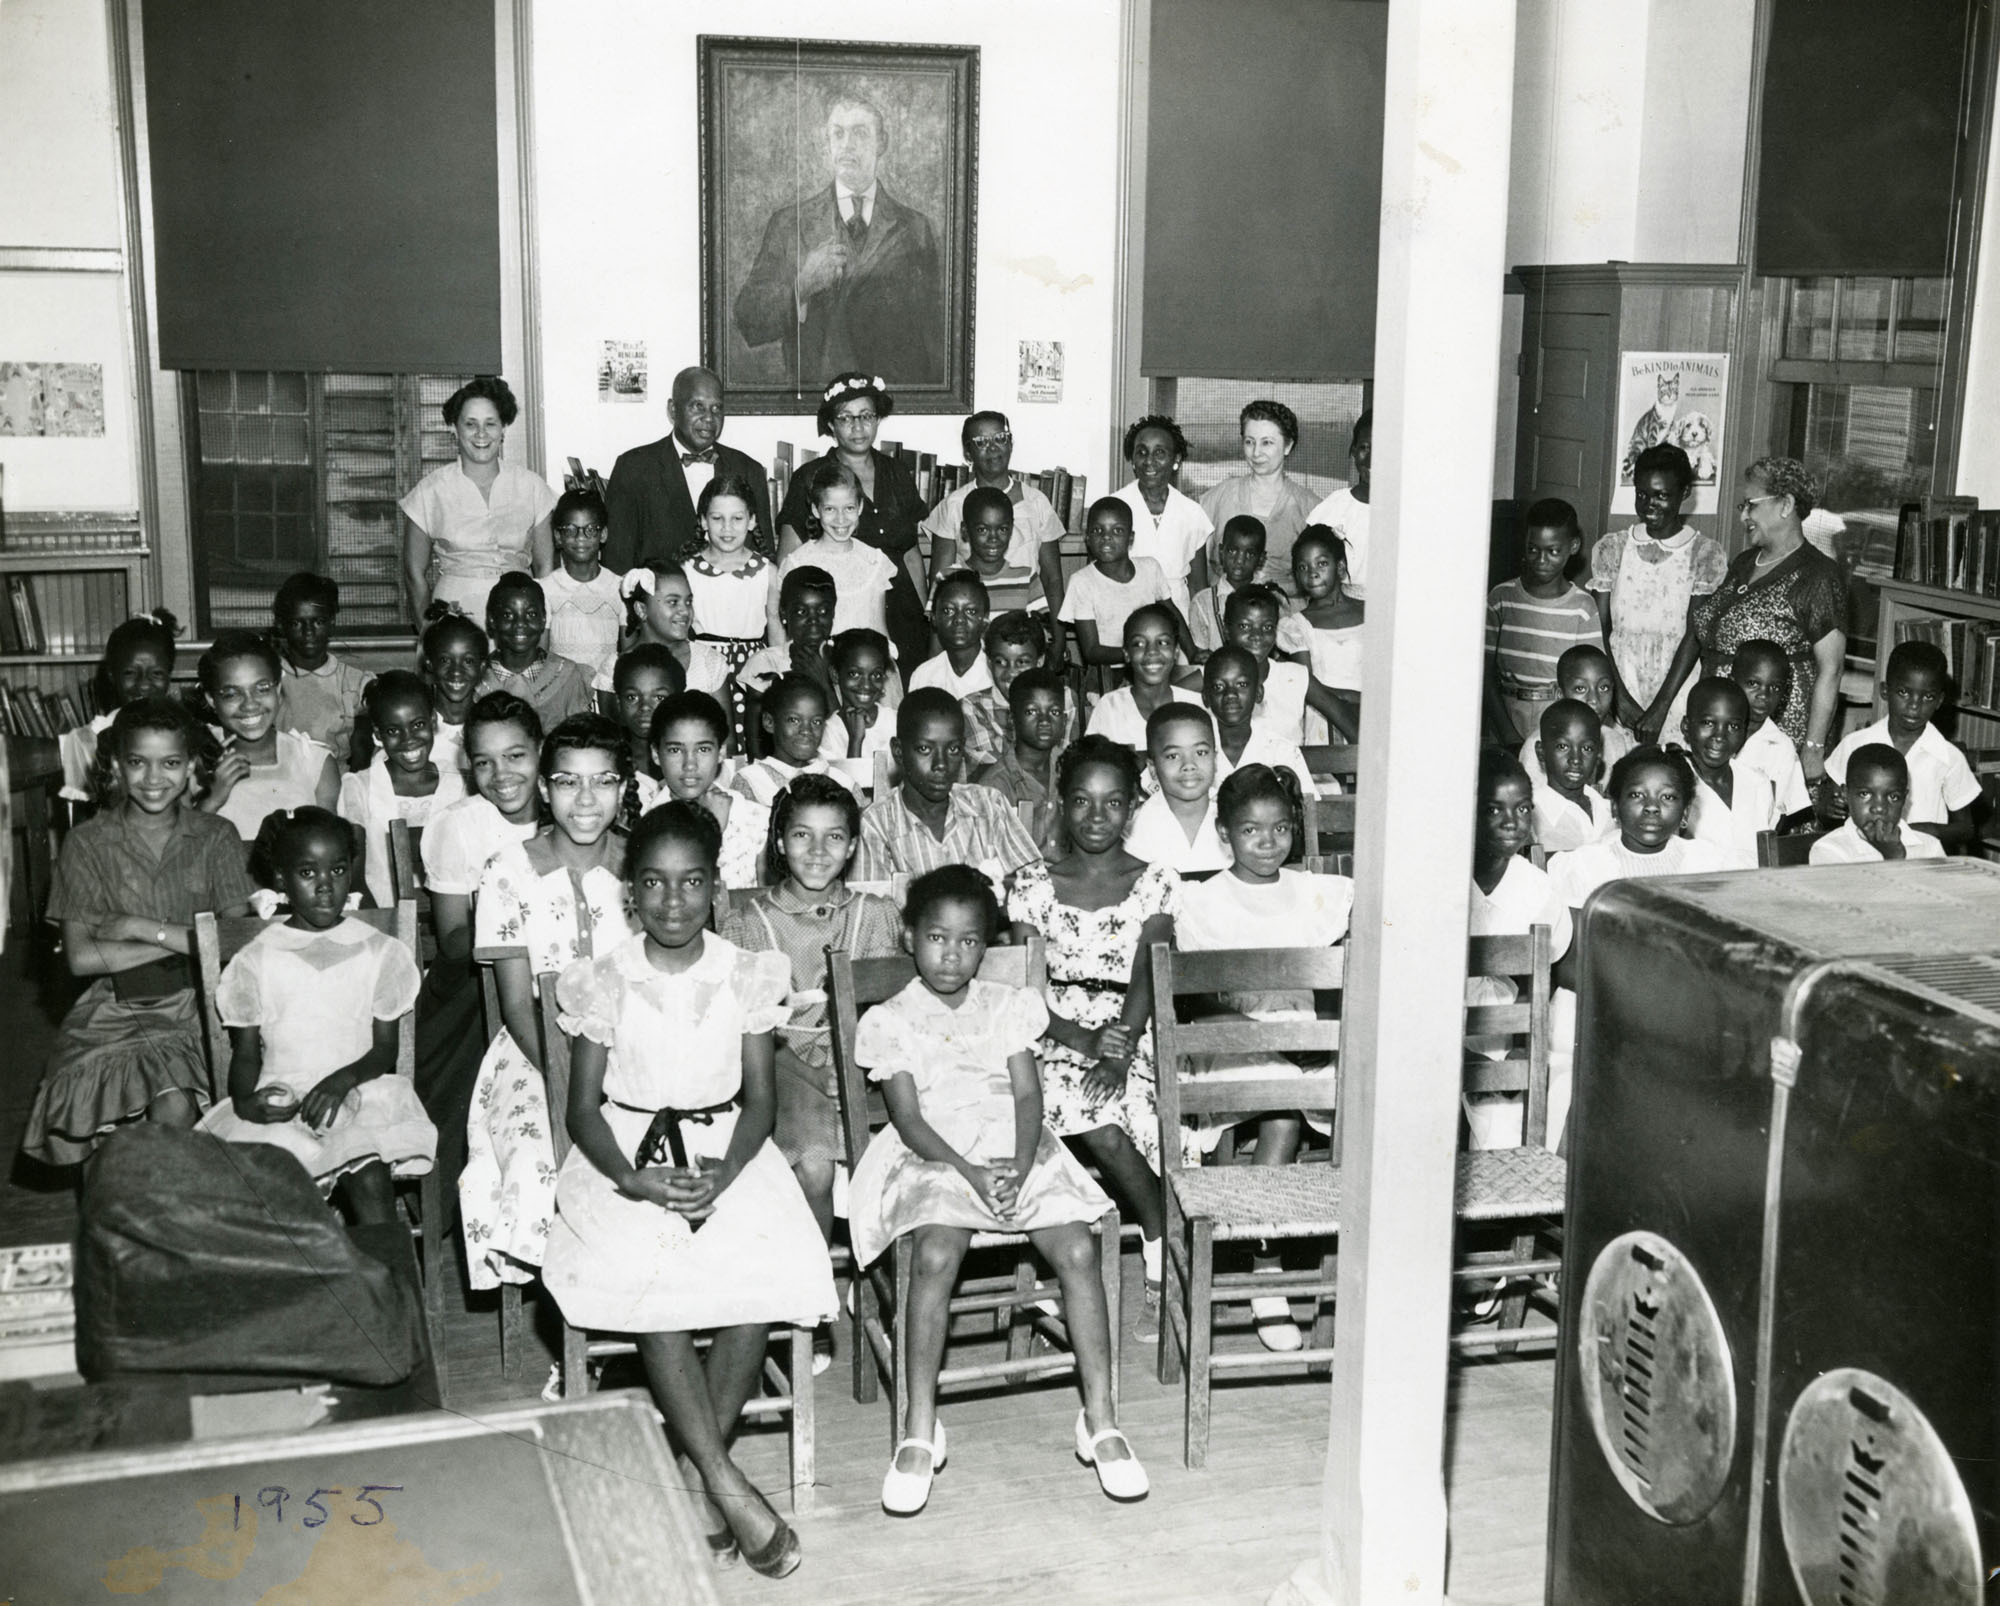 Summer reading closing exercises, Dart Hall Branch Library, 1955 (1)